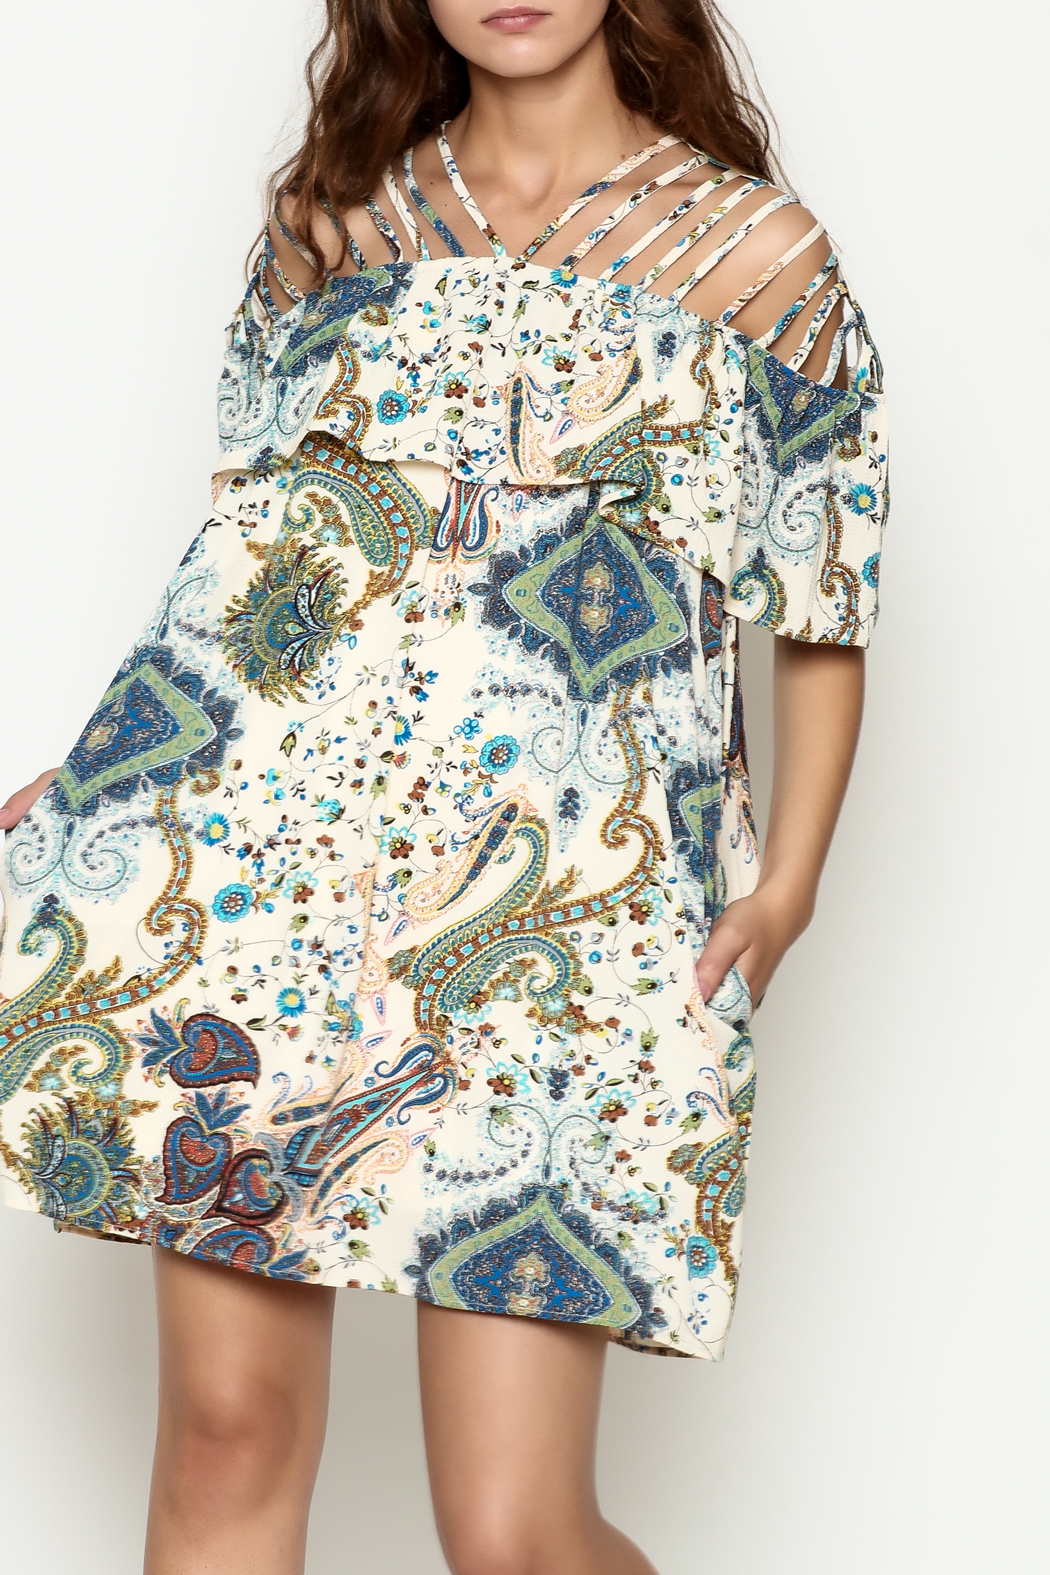 Entro Paisley Print Dress From Cincinnati By Trend